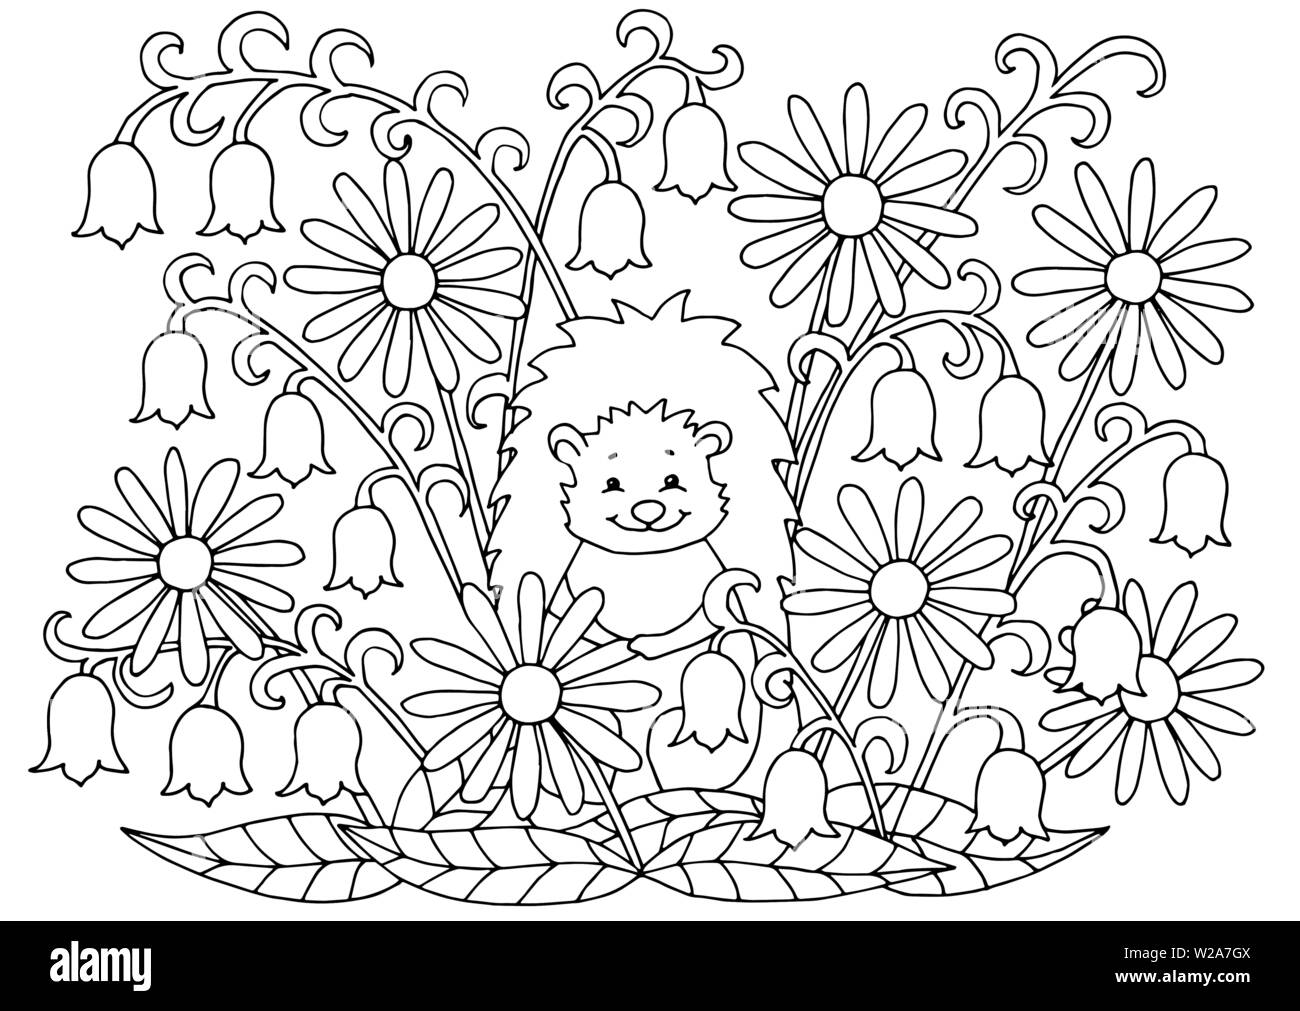 Abstract coloring page with summer flowers and cute hedgehog, for kids and  adults Stock Vector Image & Art - Alamy